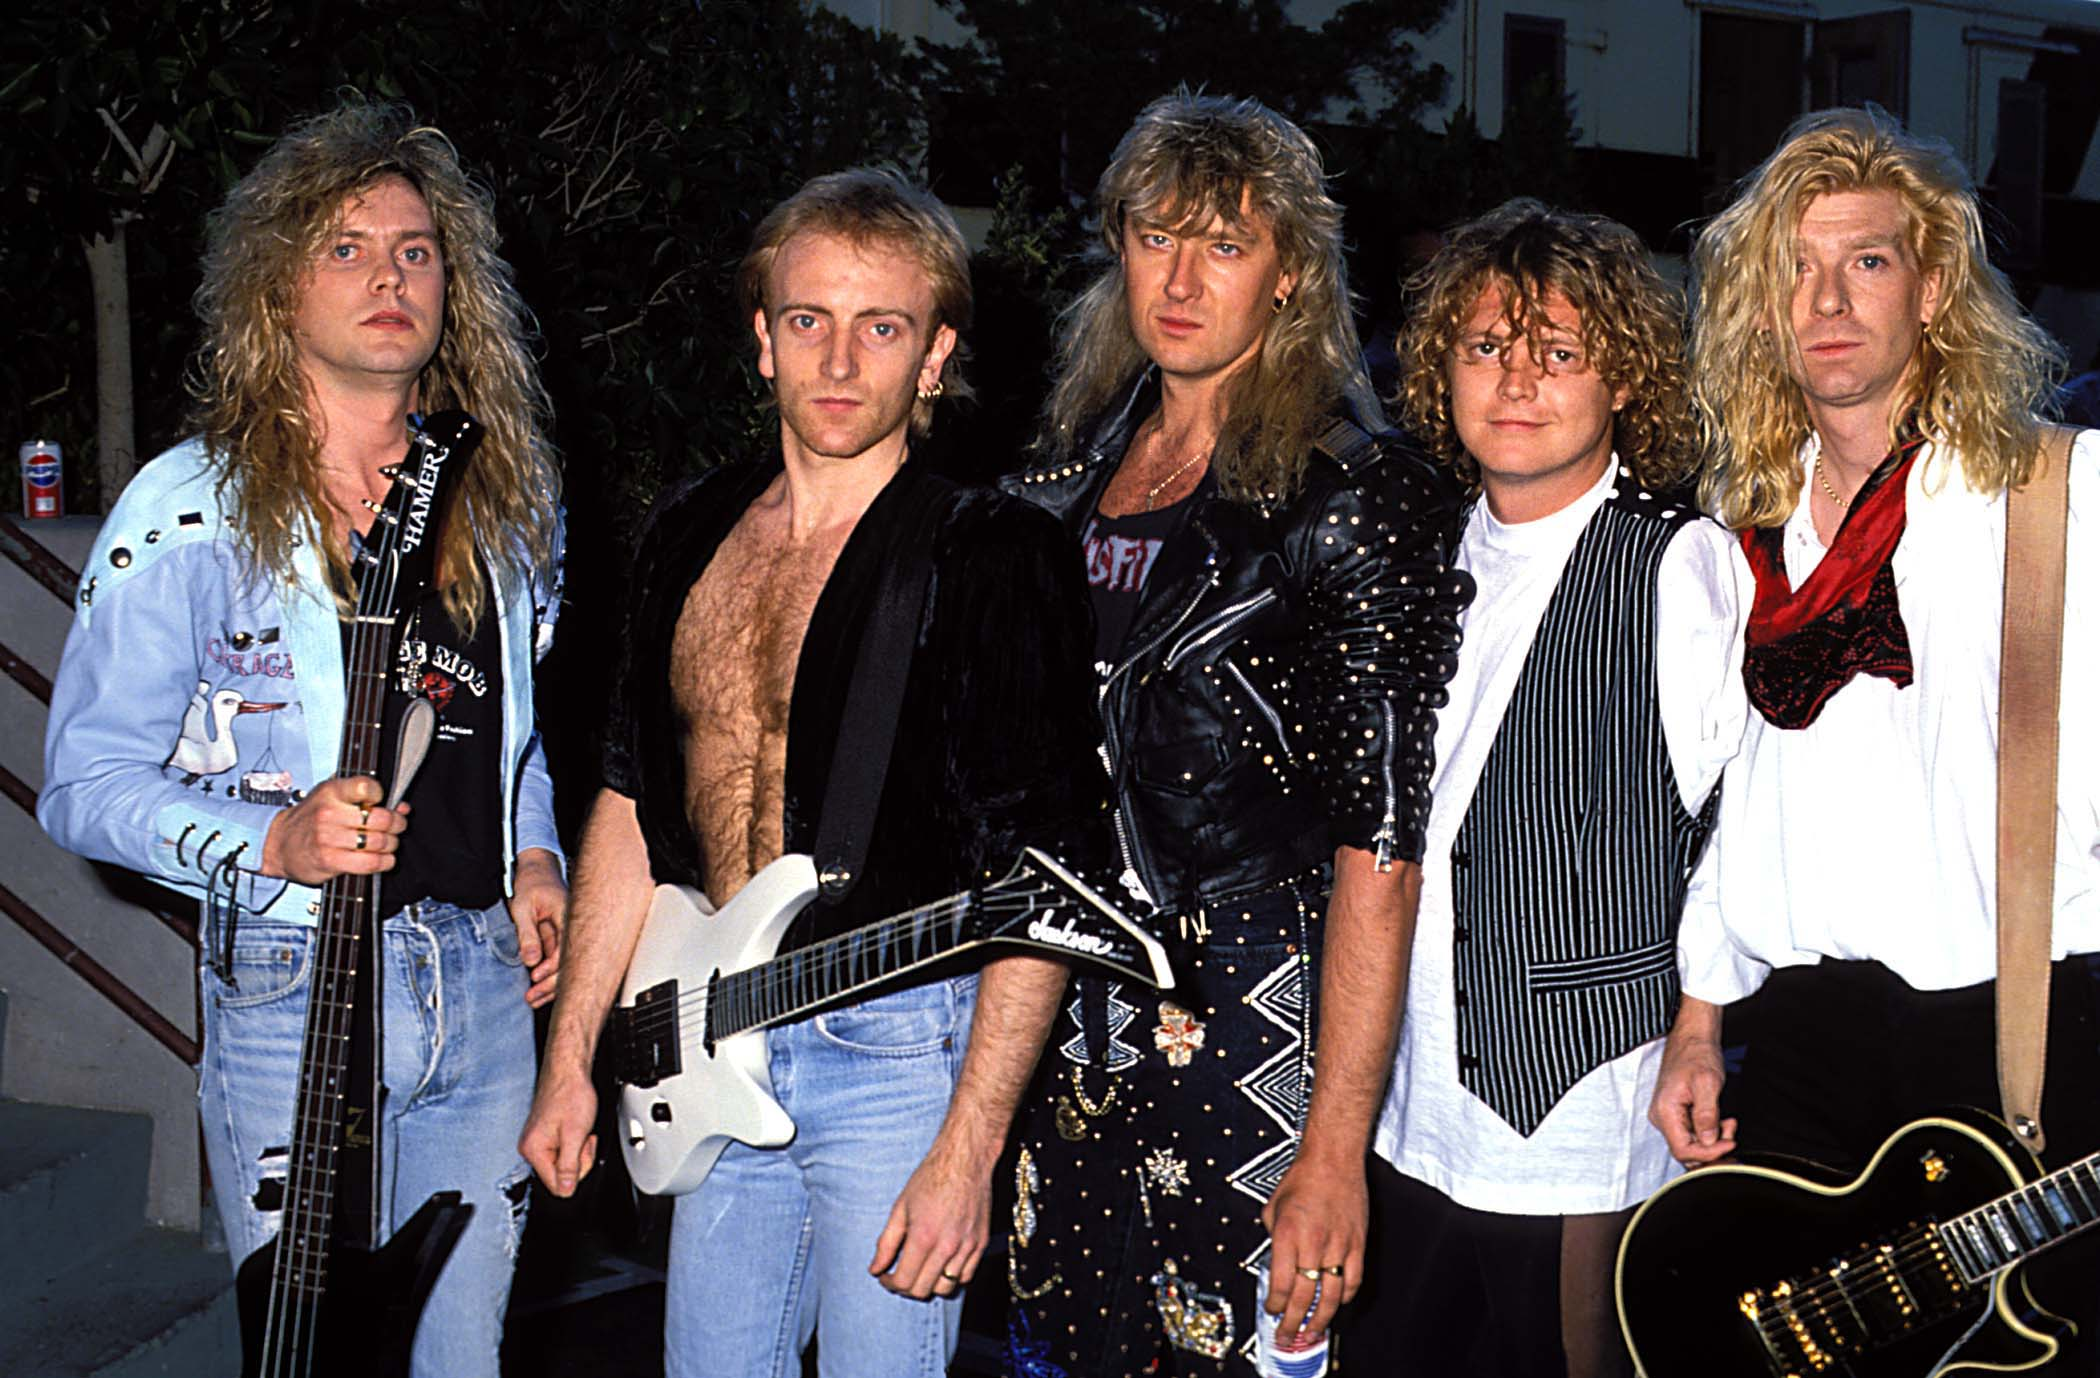 Def leppard 1989 attention groupies hair raising hotties from 80s